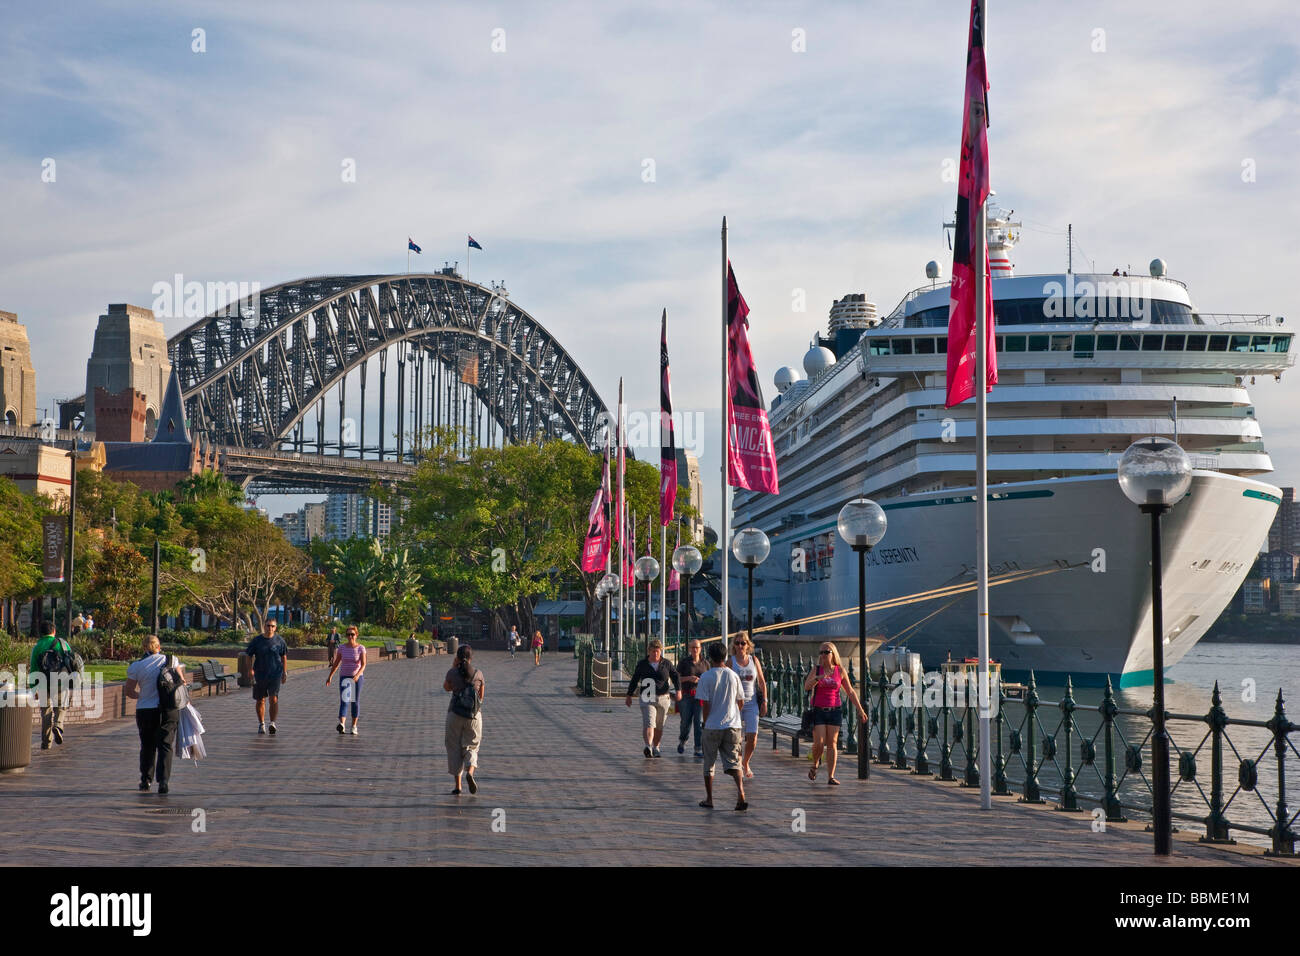 Australia New South Wales. A large passenger liner berthed near Sydney Harbour Bridge. - Stock Image